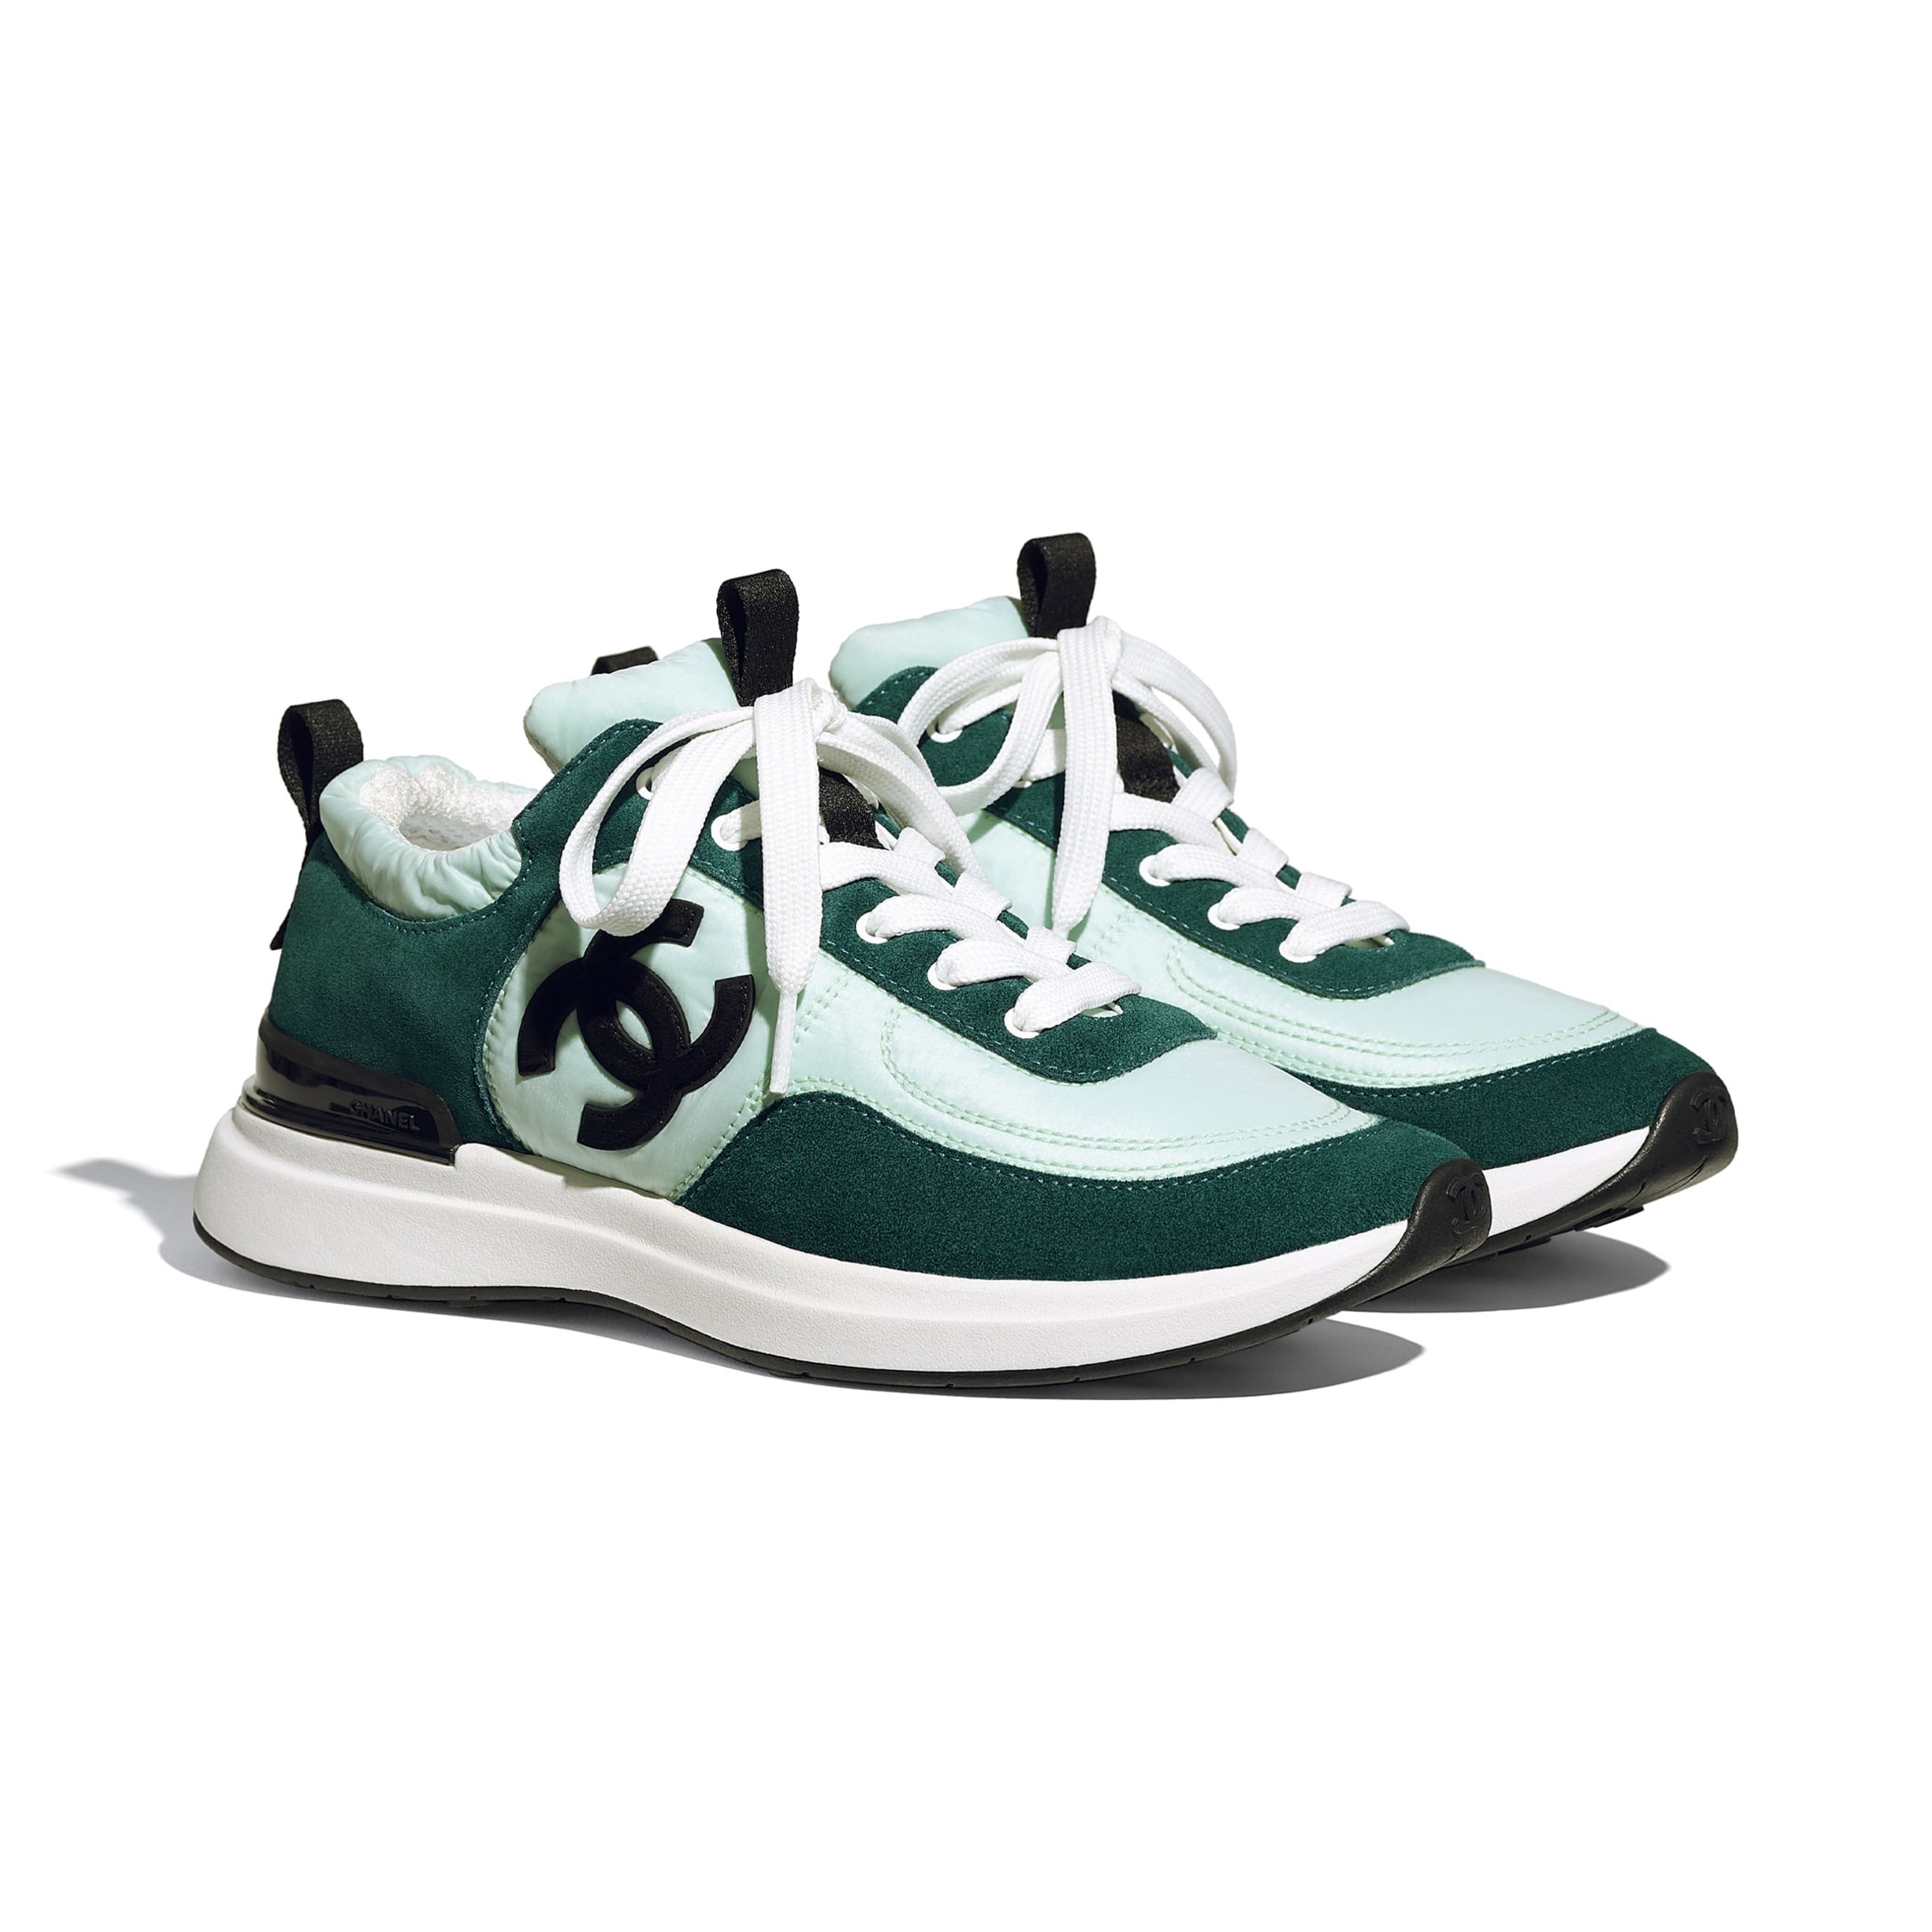 Trainers - Light Green & Green - Suede Calfskin & Nylon - CHANEL - Alternative view - see standard sized version